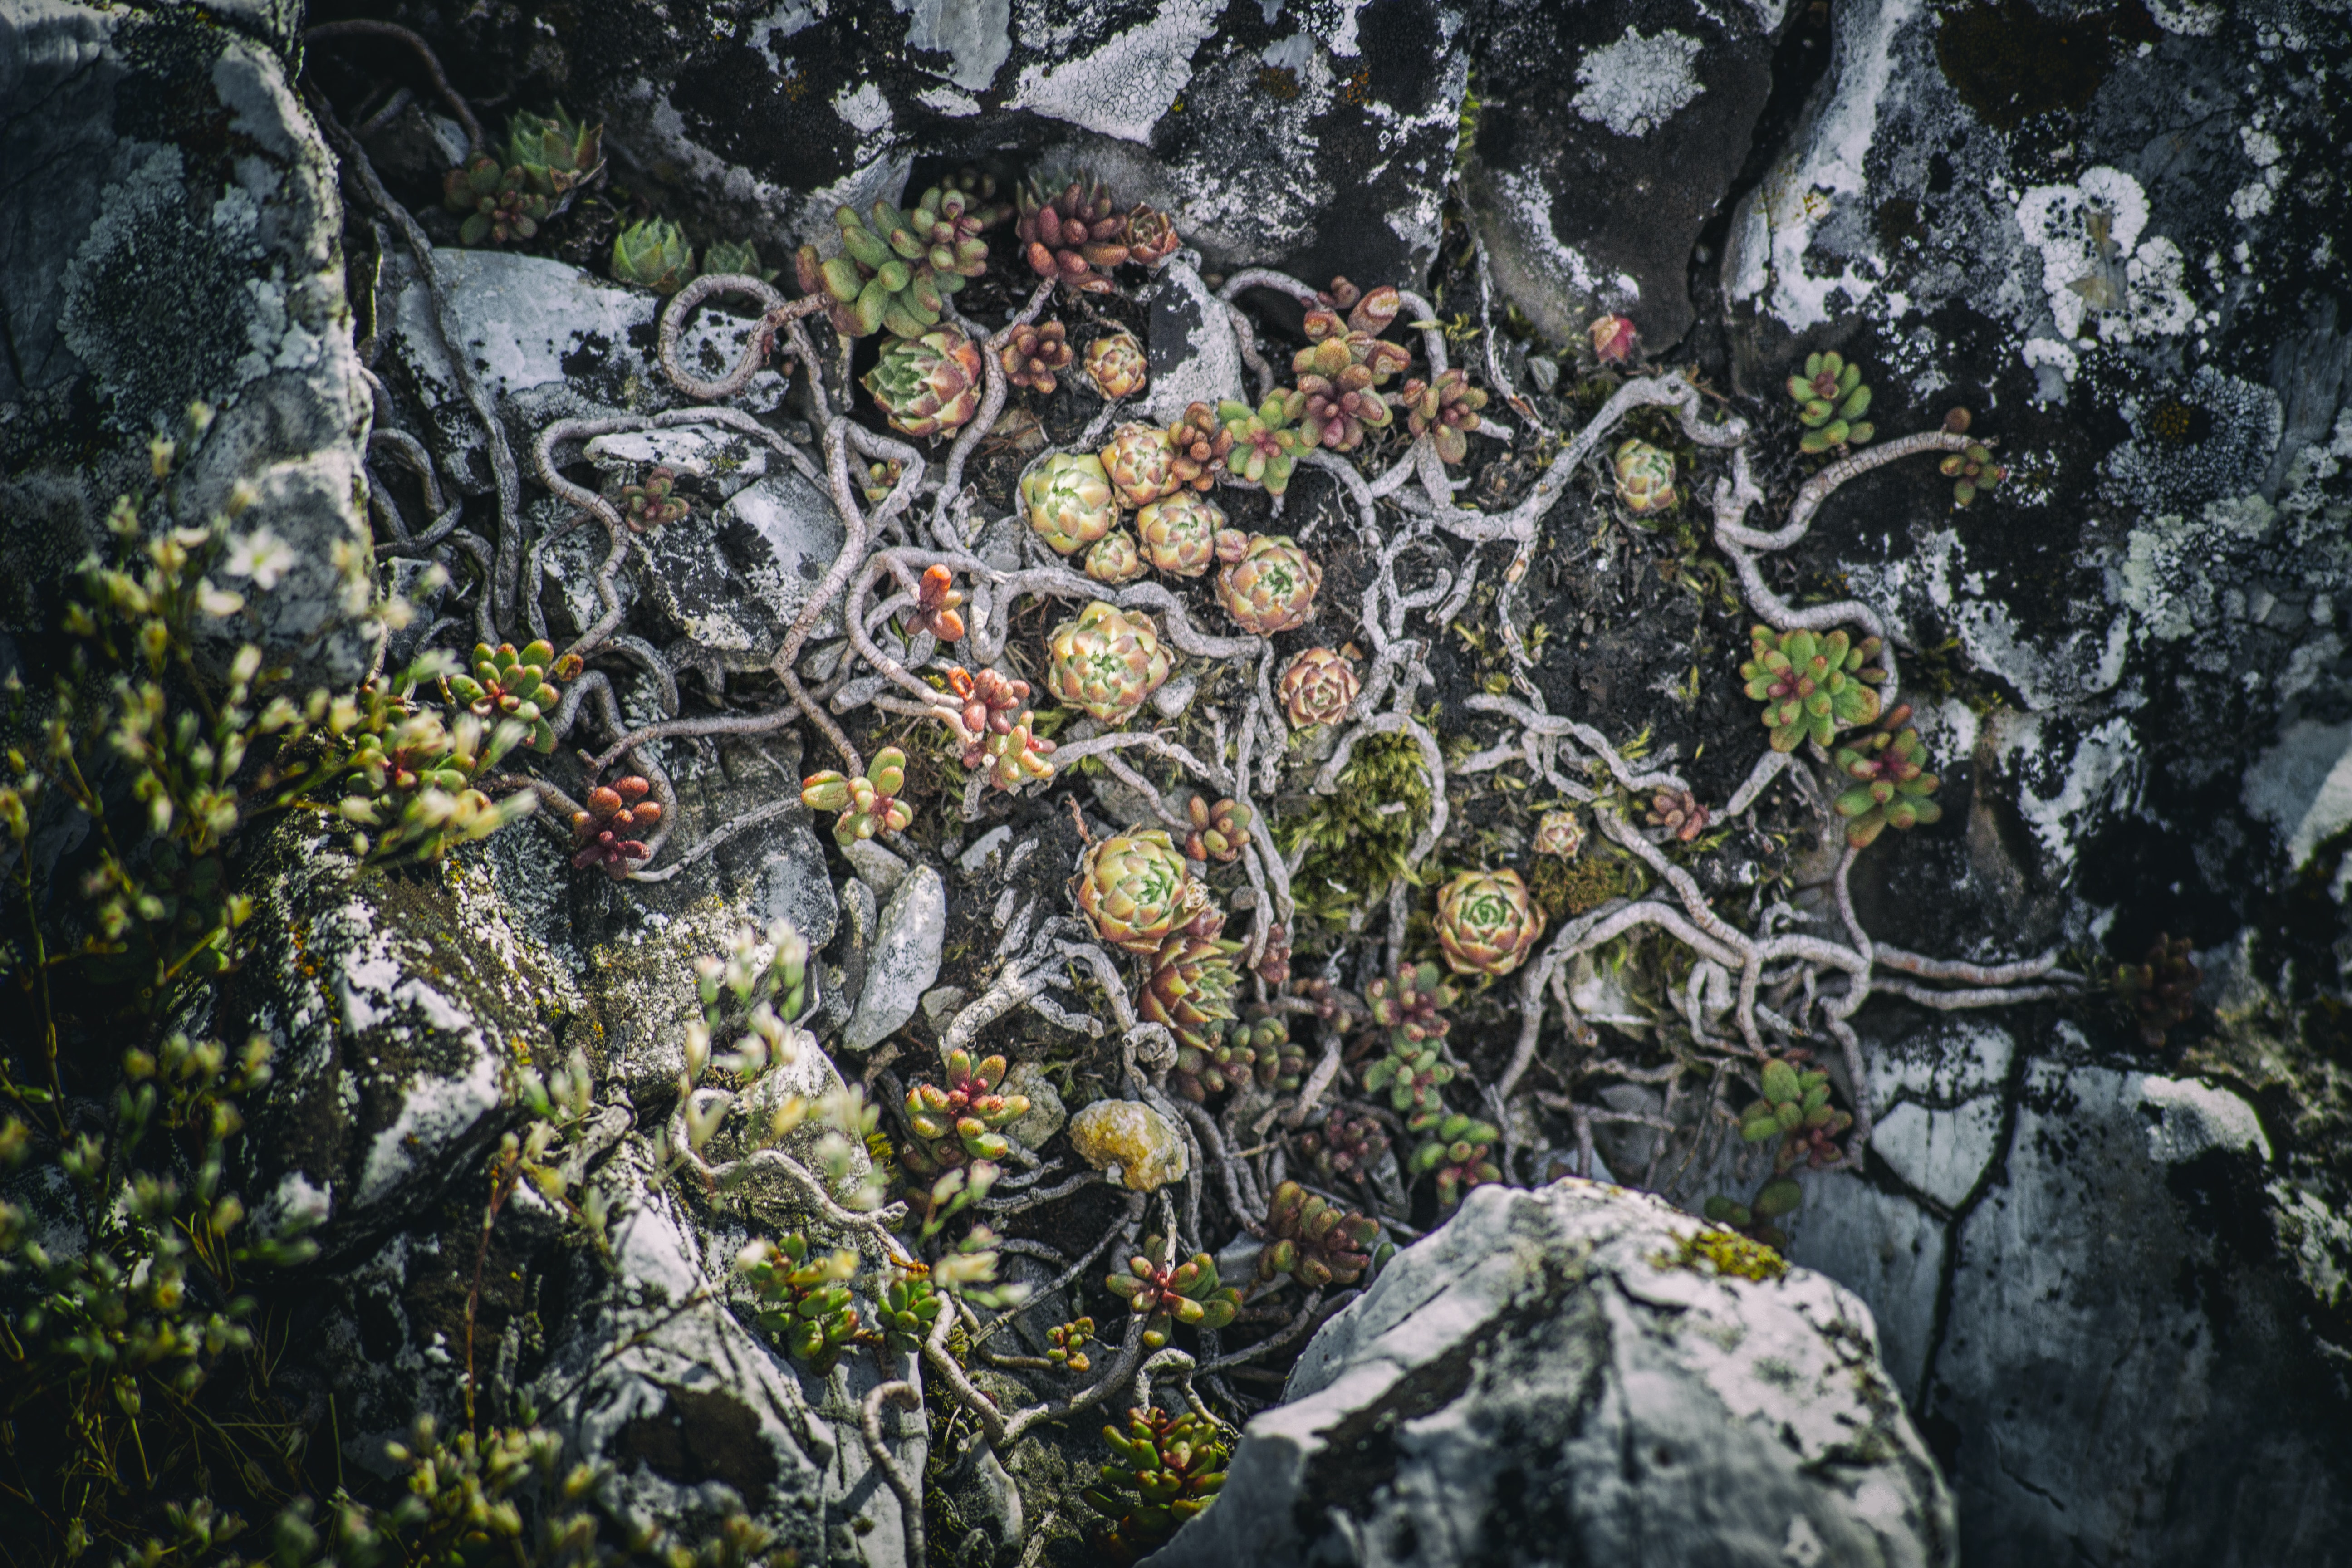 green, red, and white succulent plants surrounded by stones